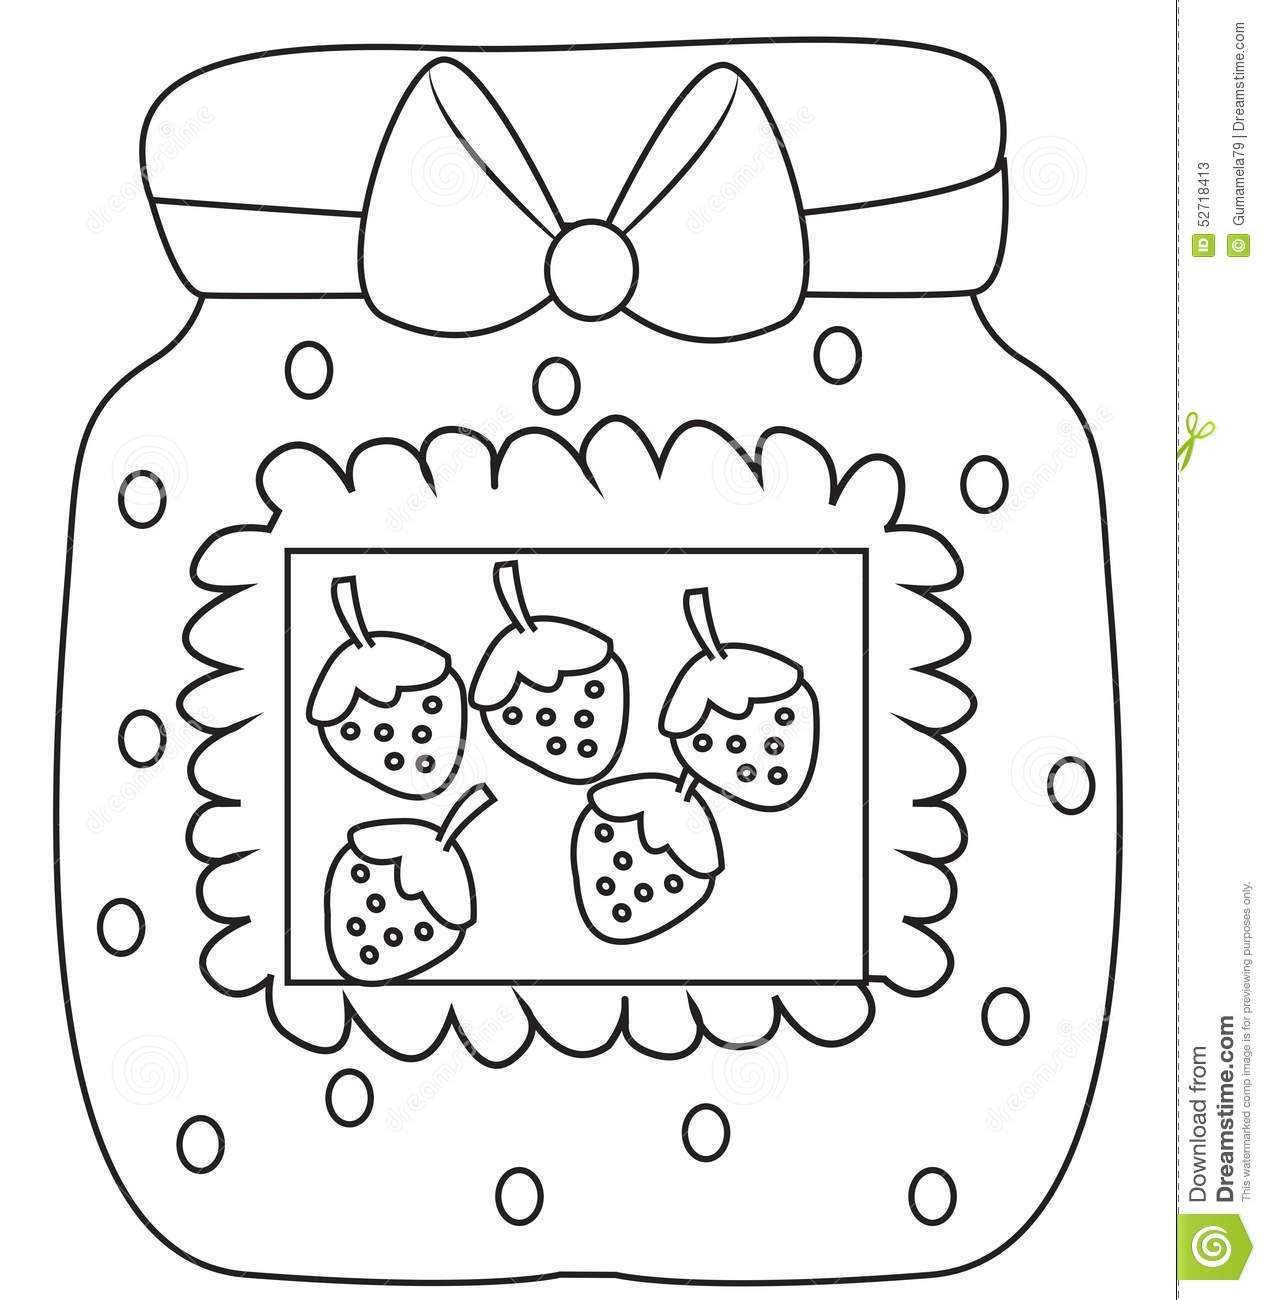 Strawberry Jam Coloring Page Stock Illustration